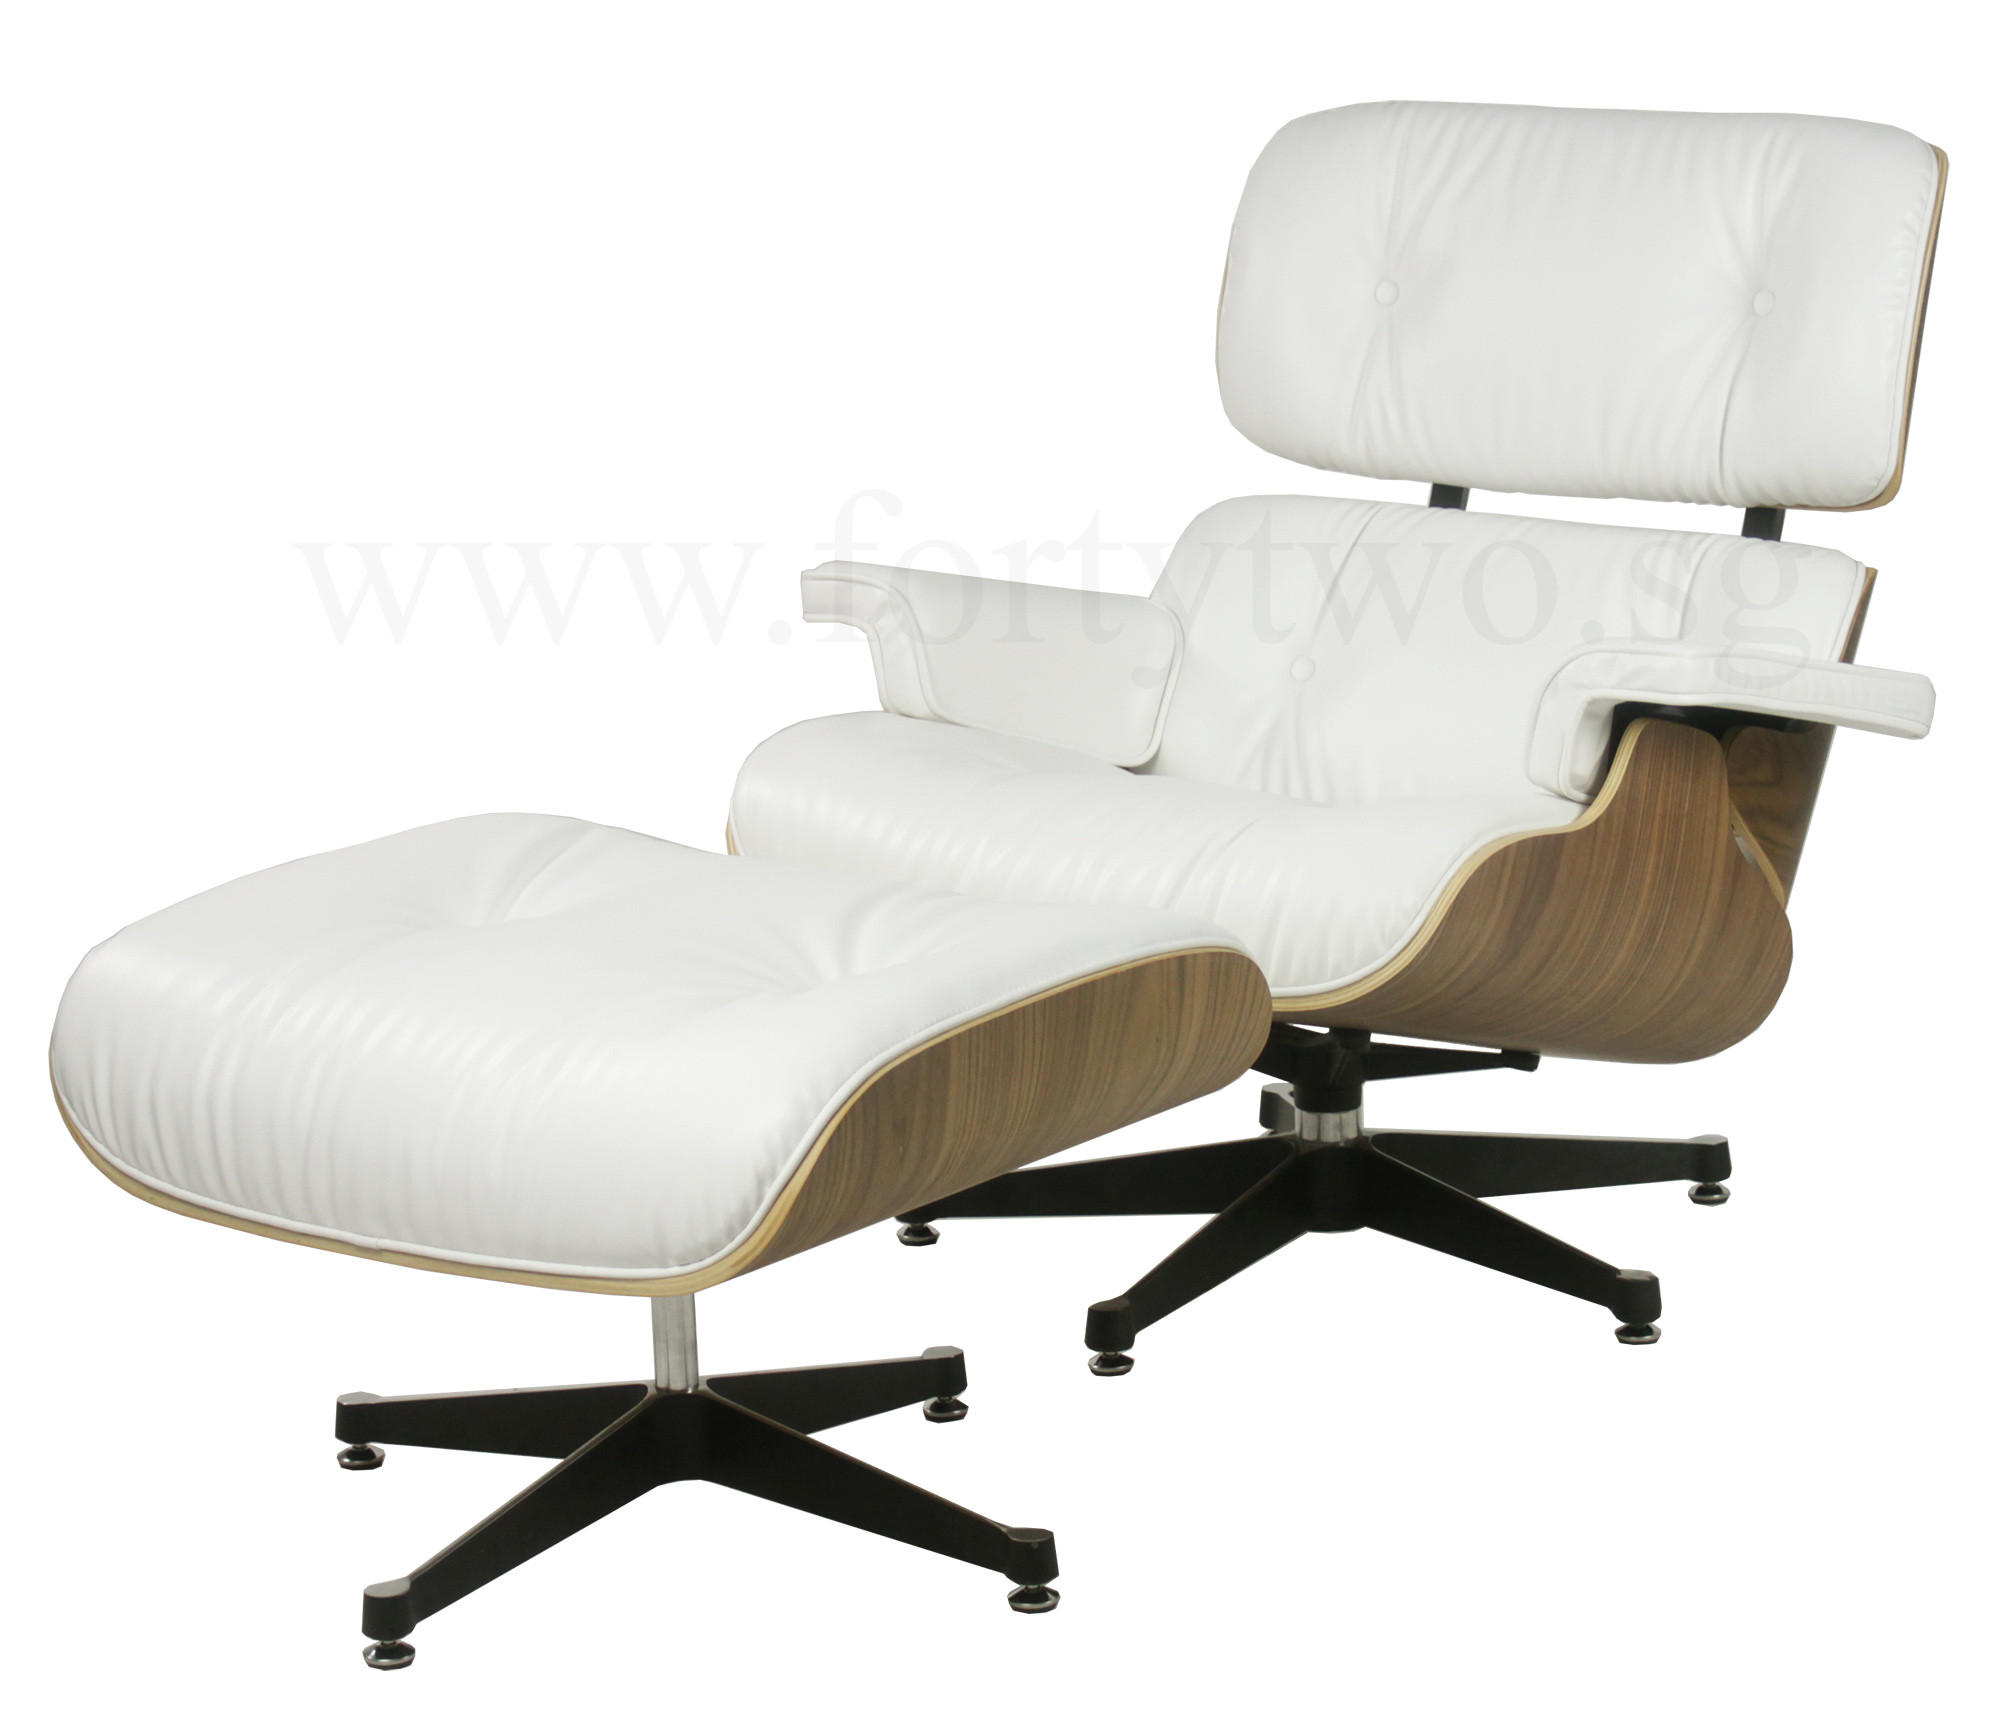 Eames Chair Price Designer Replica Eames Lounge Chair White Leather